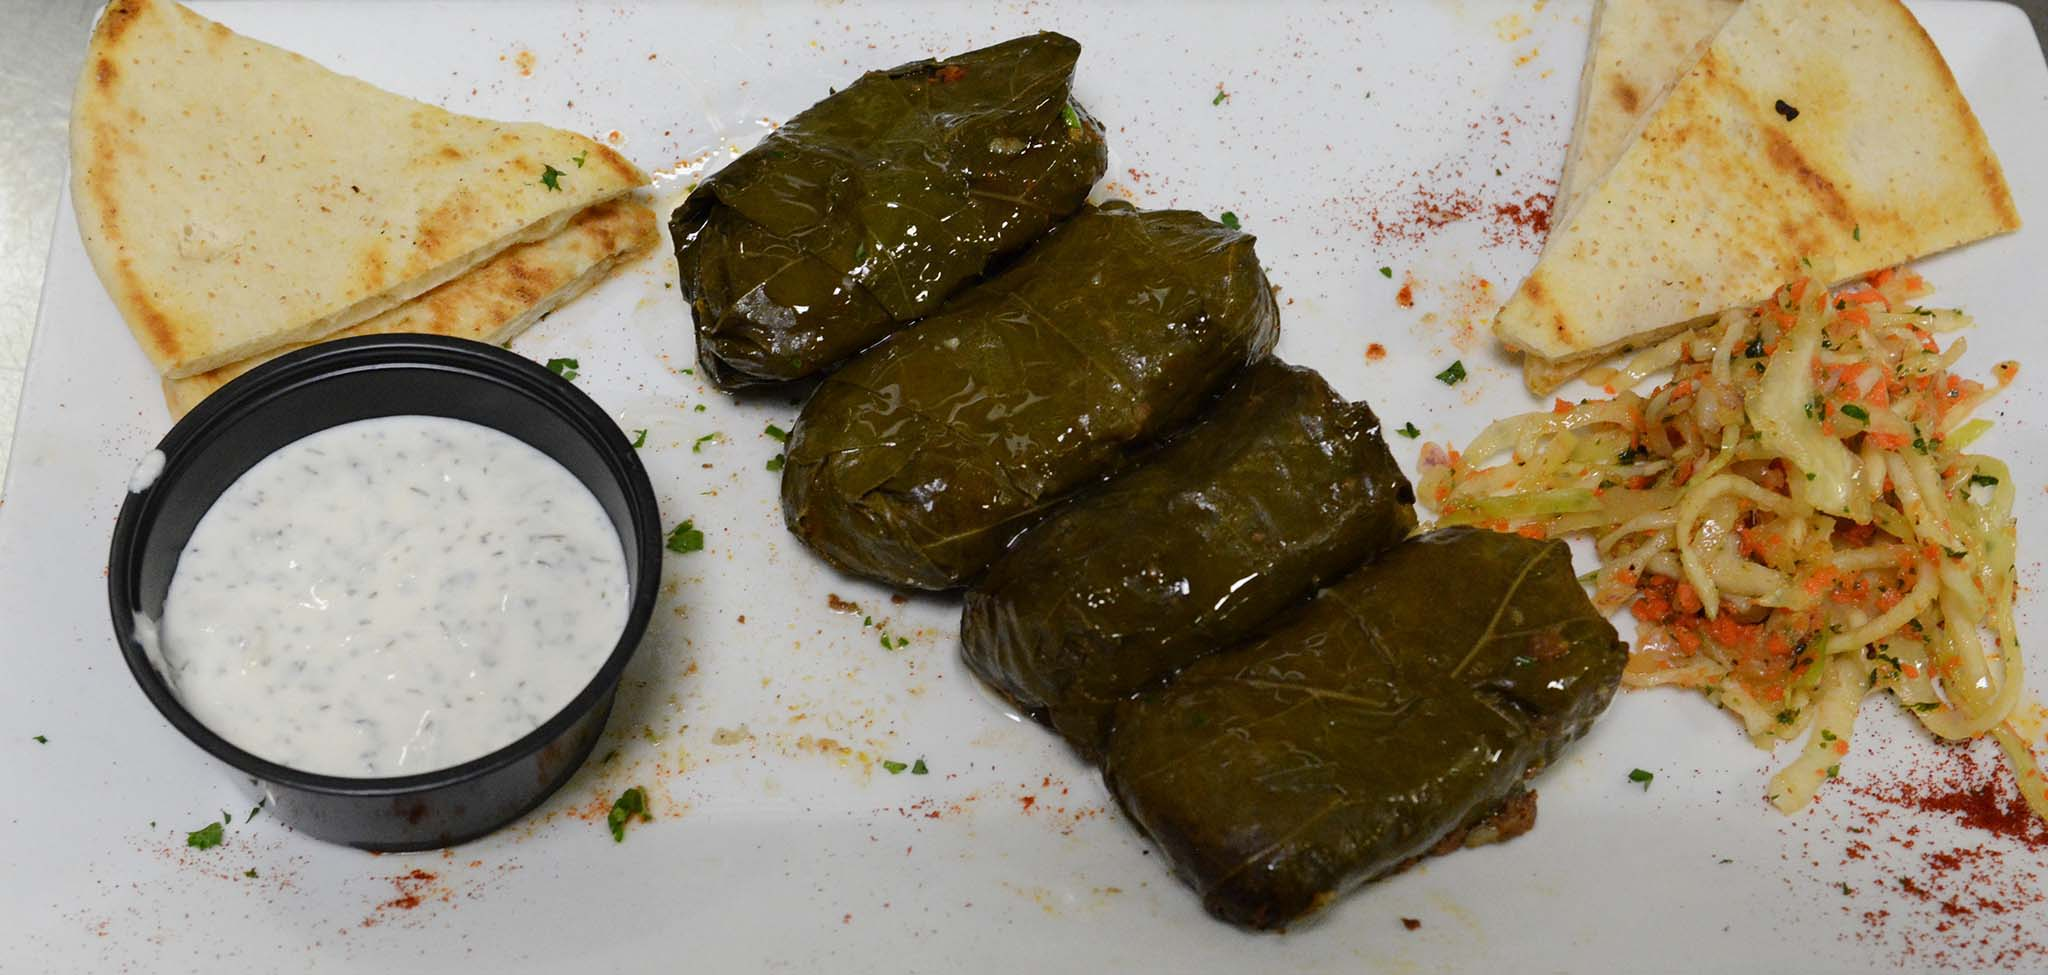 Mediterranean Restaurant Greek Lake Mary Orlando